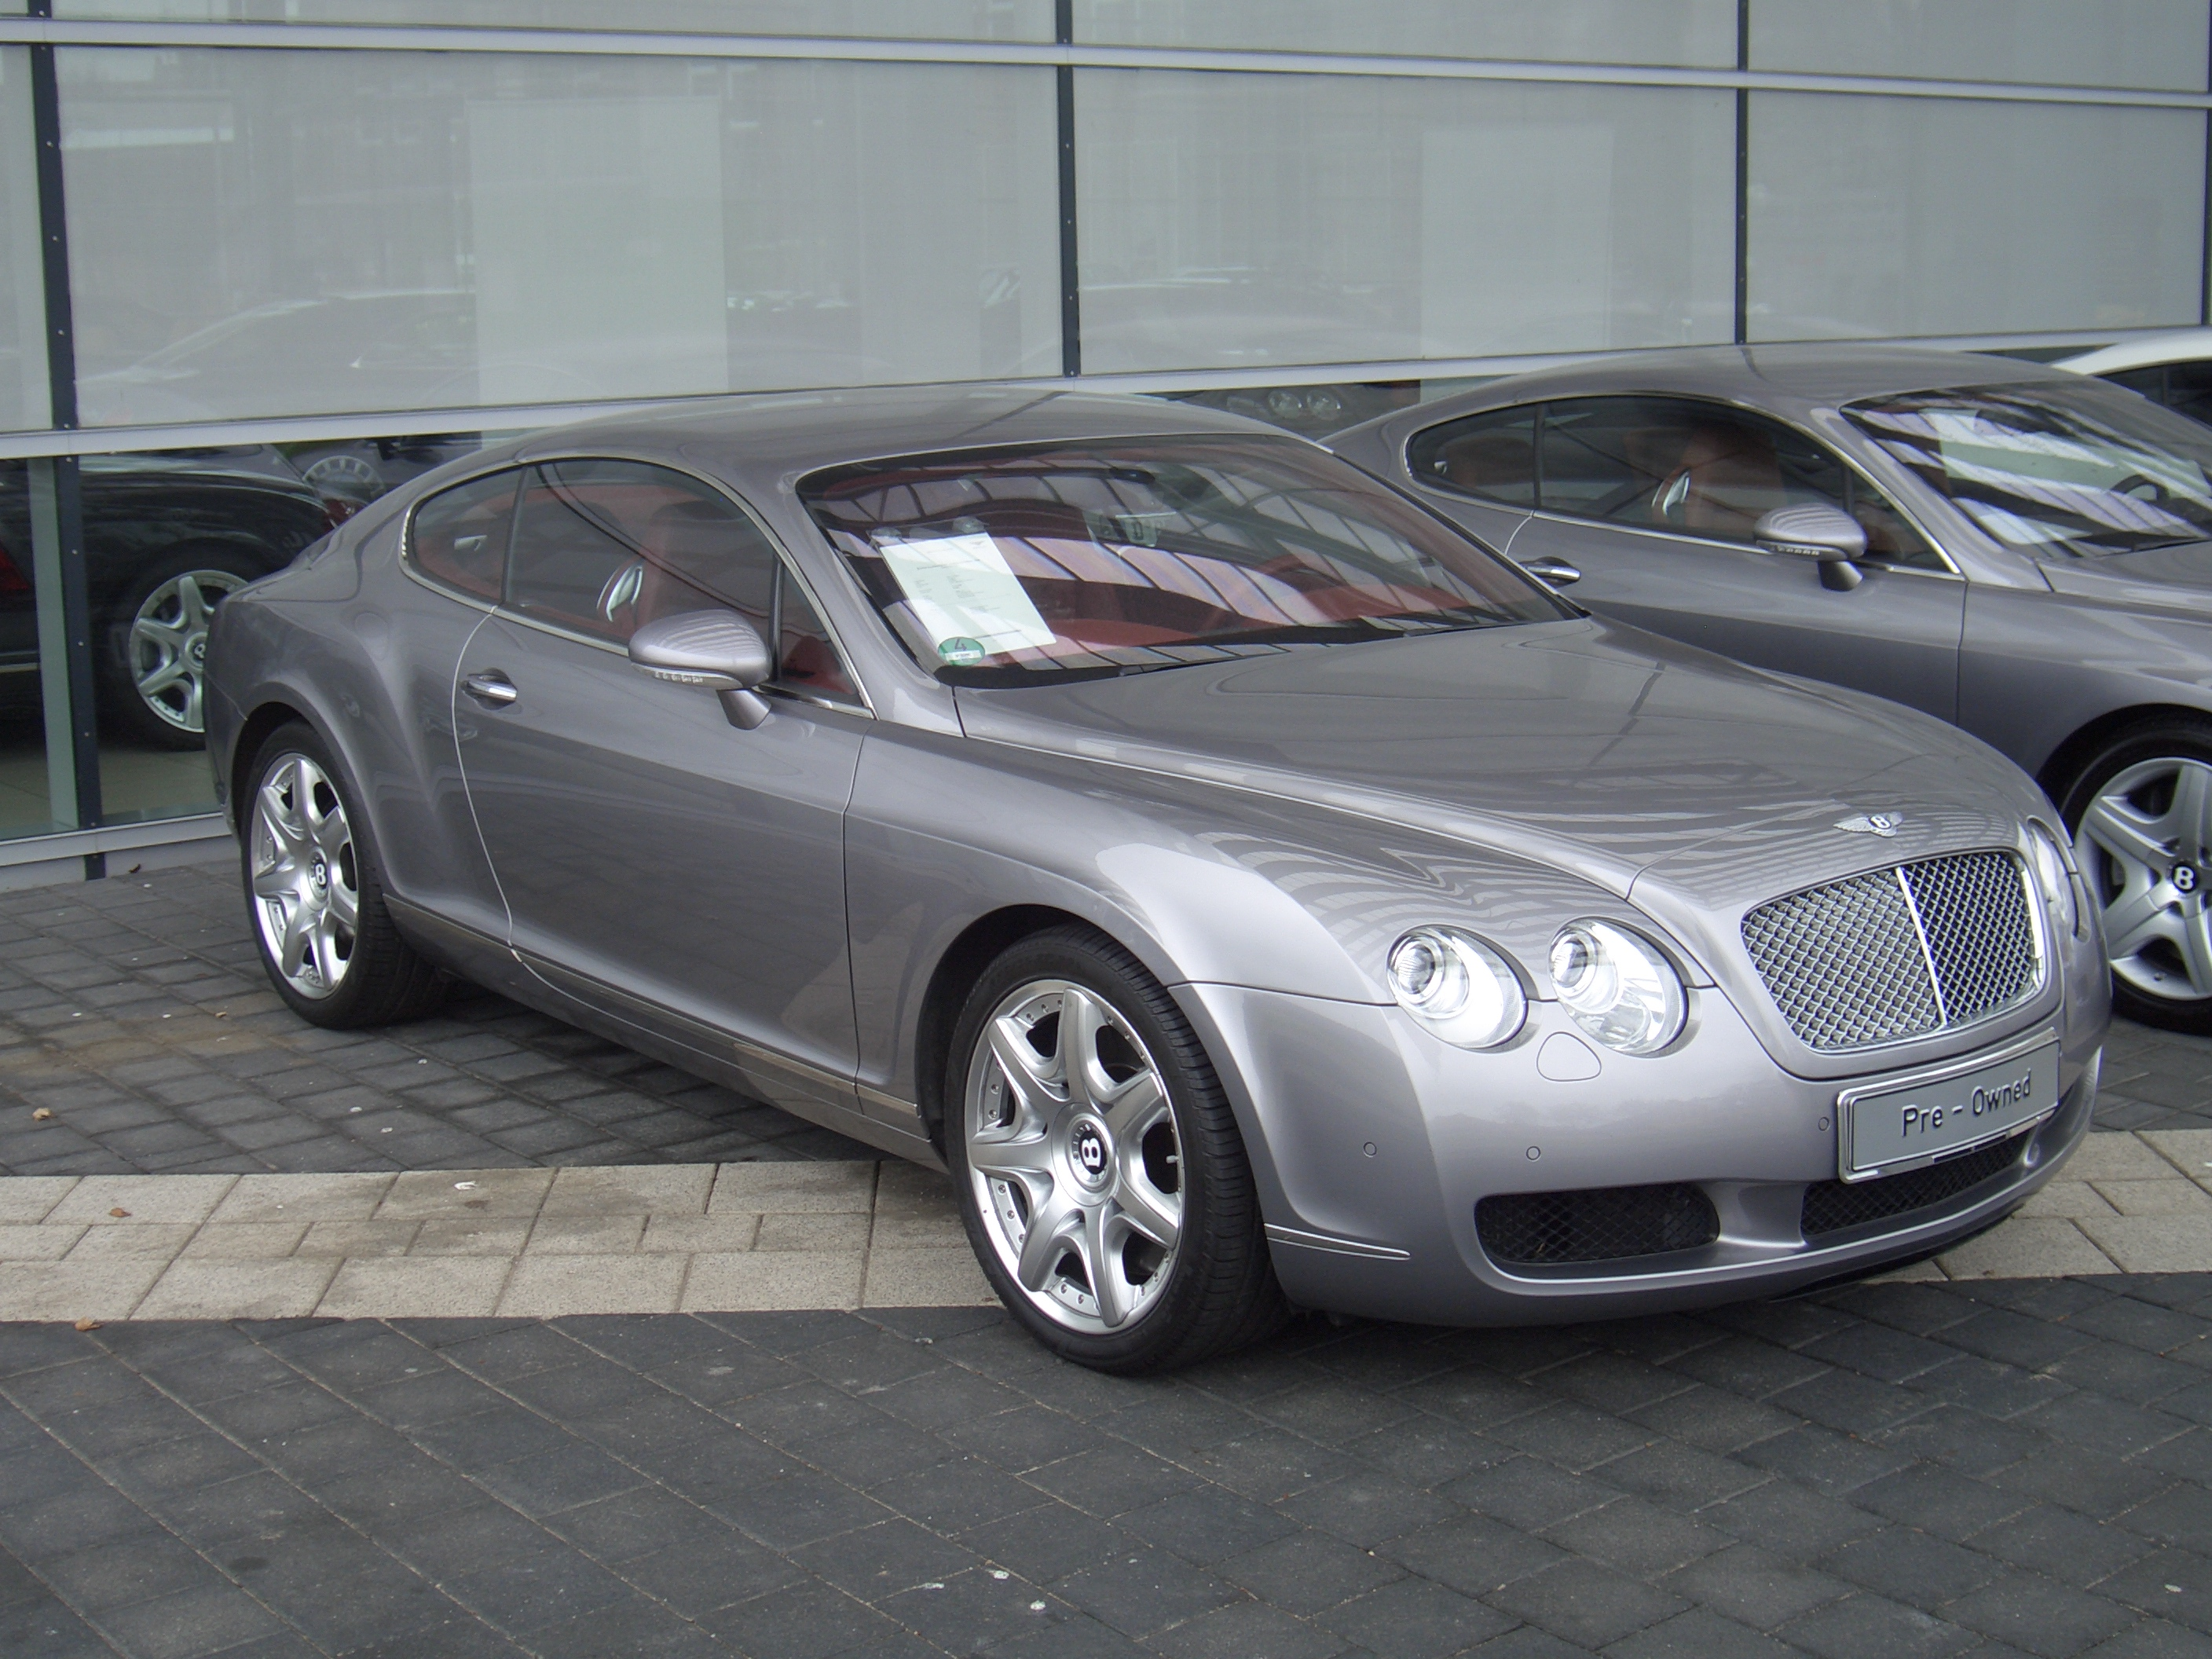 gt 2006 2 bentley continental gt 2006 3 bentley continental gt 2006. Cars Review. Best American Auto & Cars Review